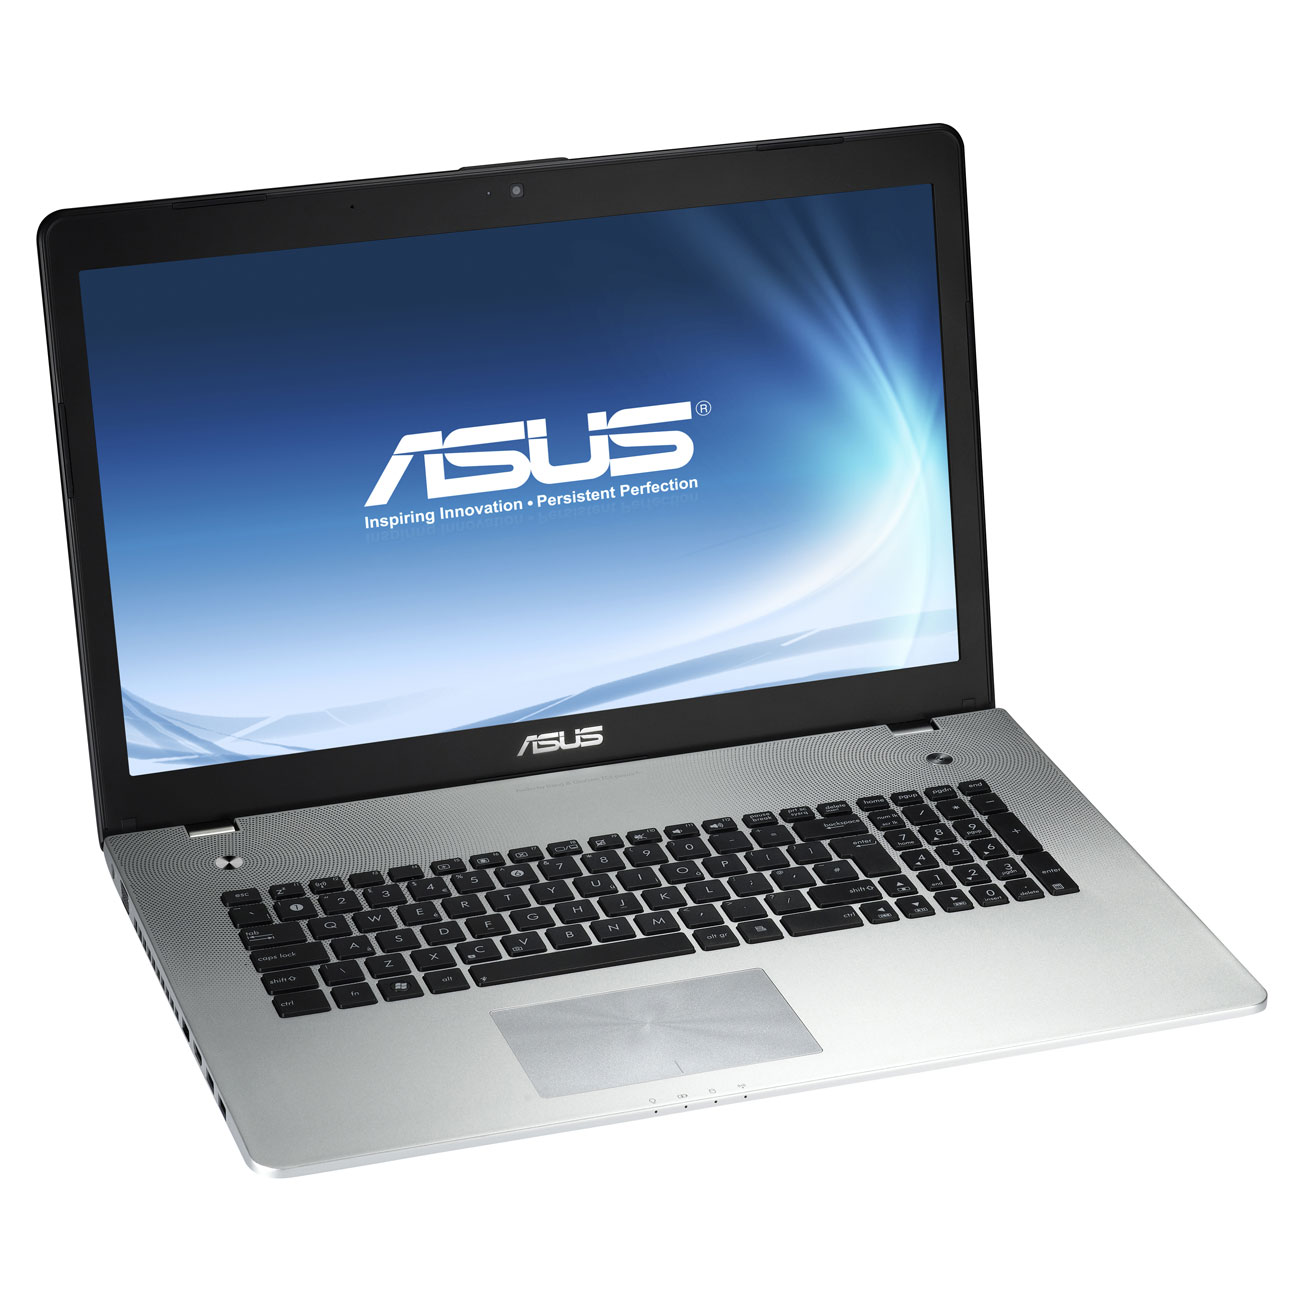 "PC portable ASUS N76VB-T4166H Intel Core i7-3630QM 6 Go 750 Go 17.3"" LED NVIDIA GeForce GT 740M Graveur DVD Wi-Fi N/Bluetooth Webcam Windows 8 64 bits (garantie constructeur 1 an)"